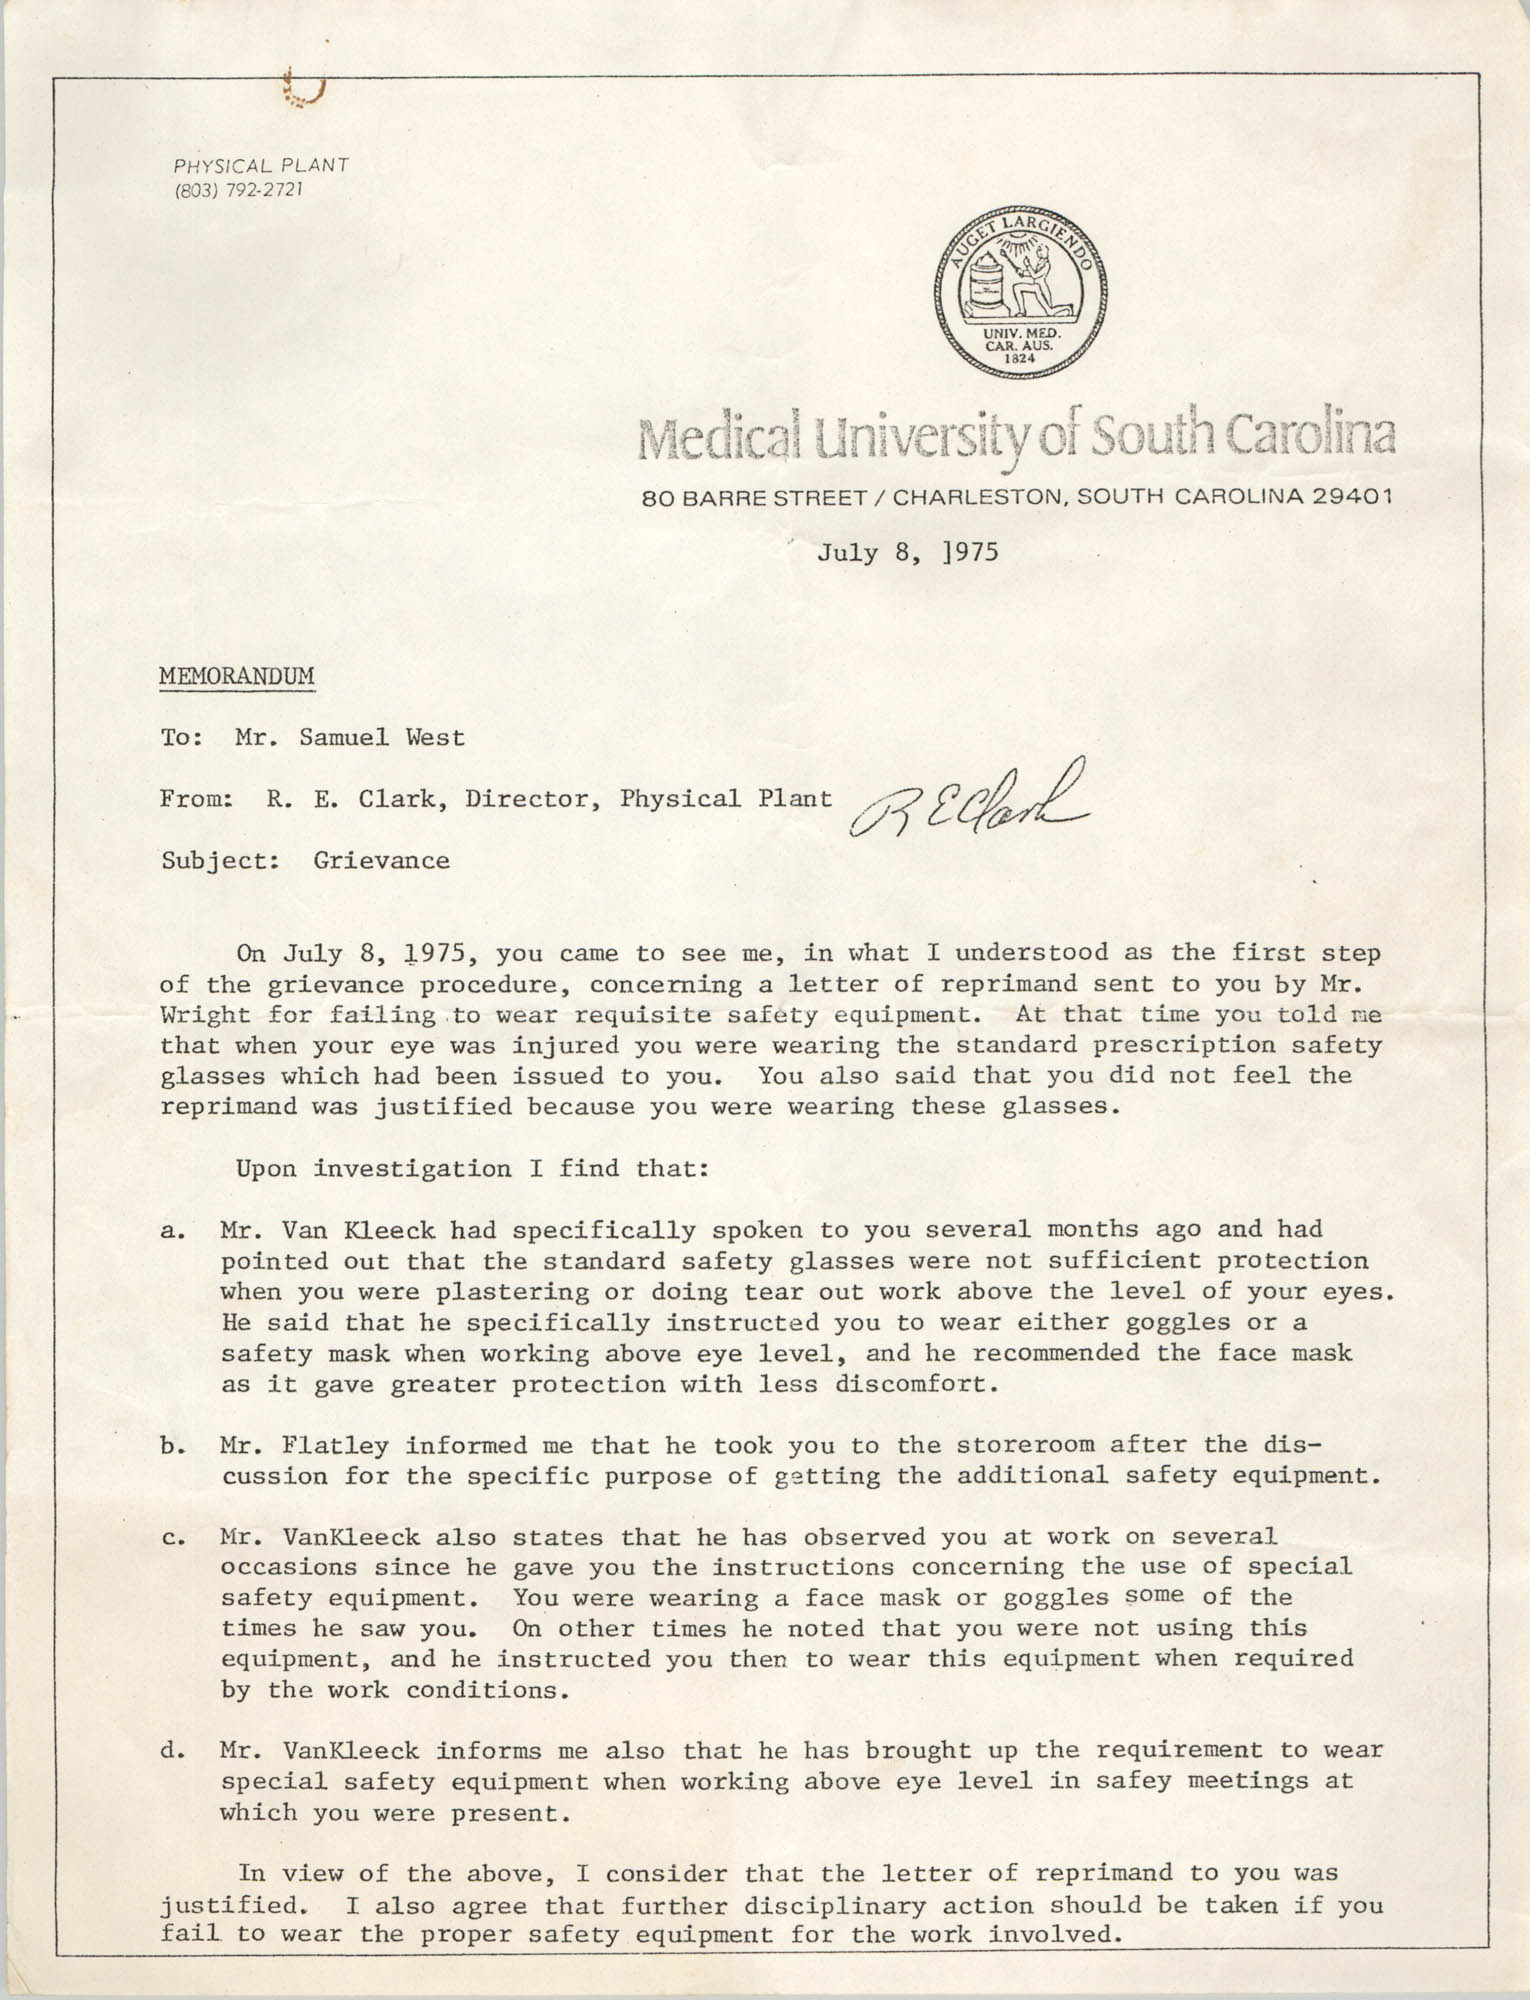 Medical University of South Carolina Memorandum, July 7, 1975